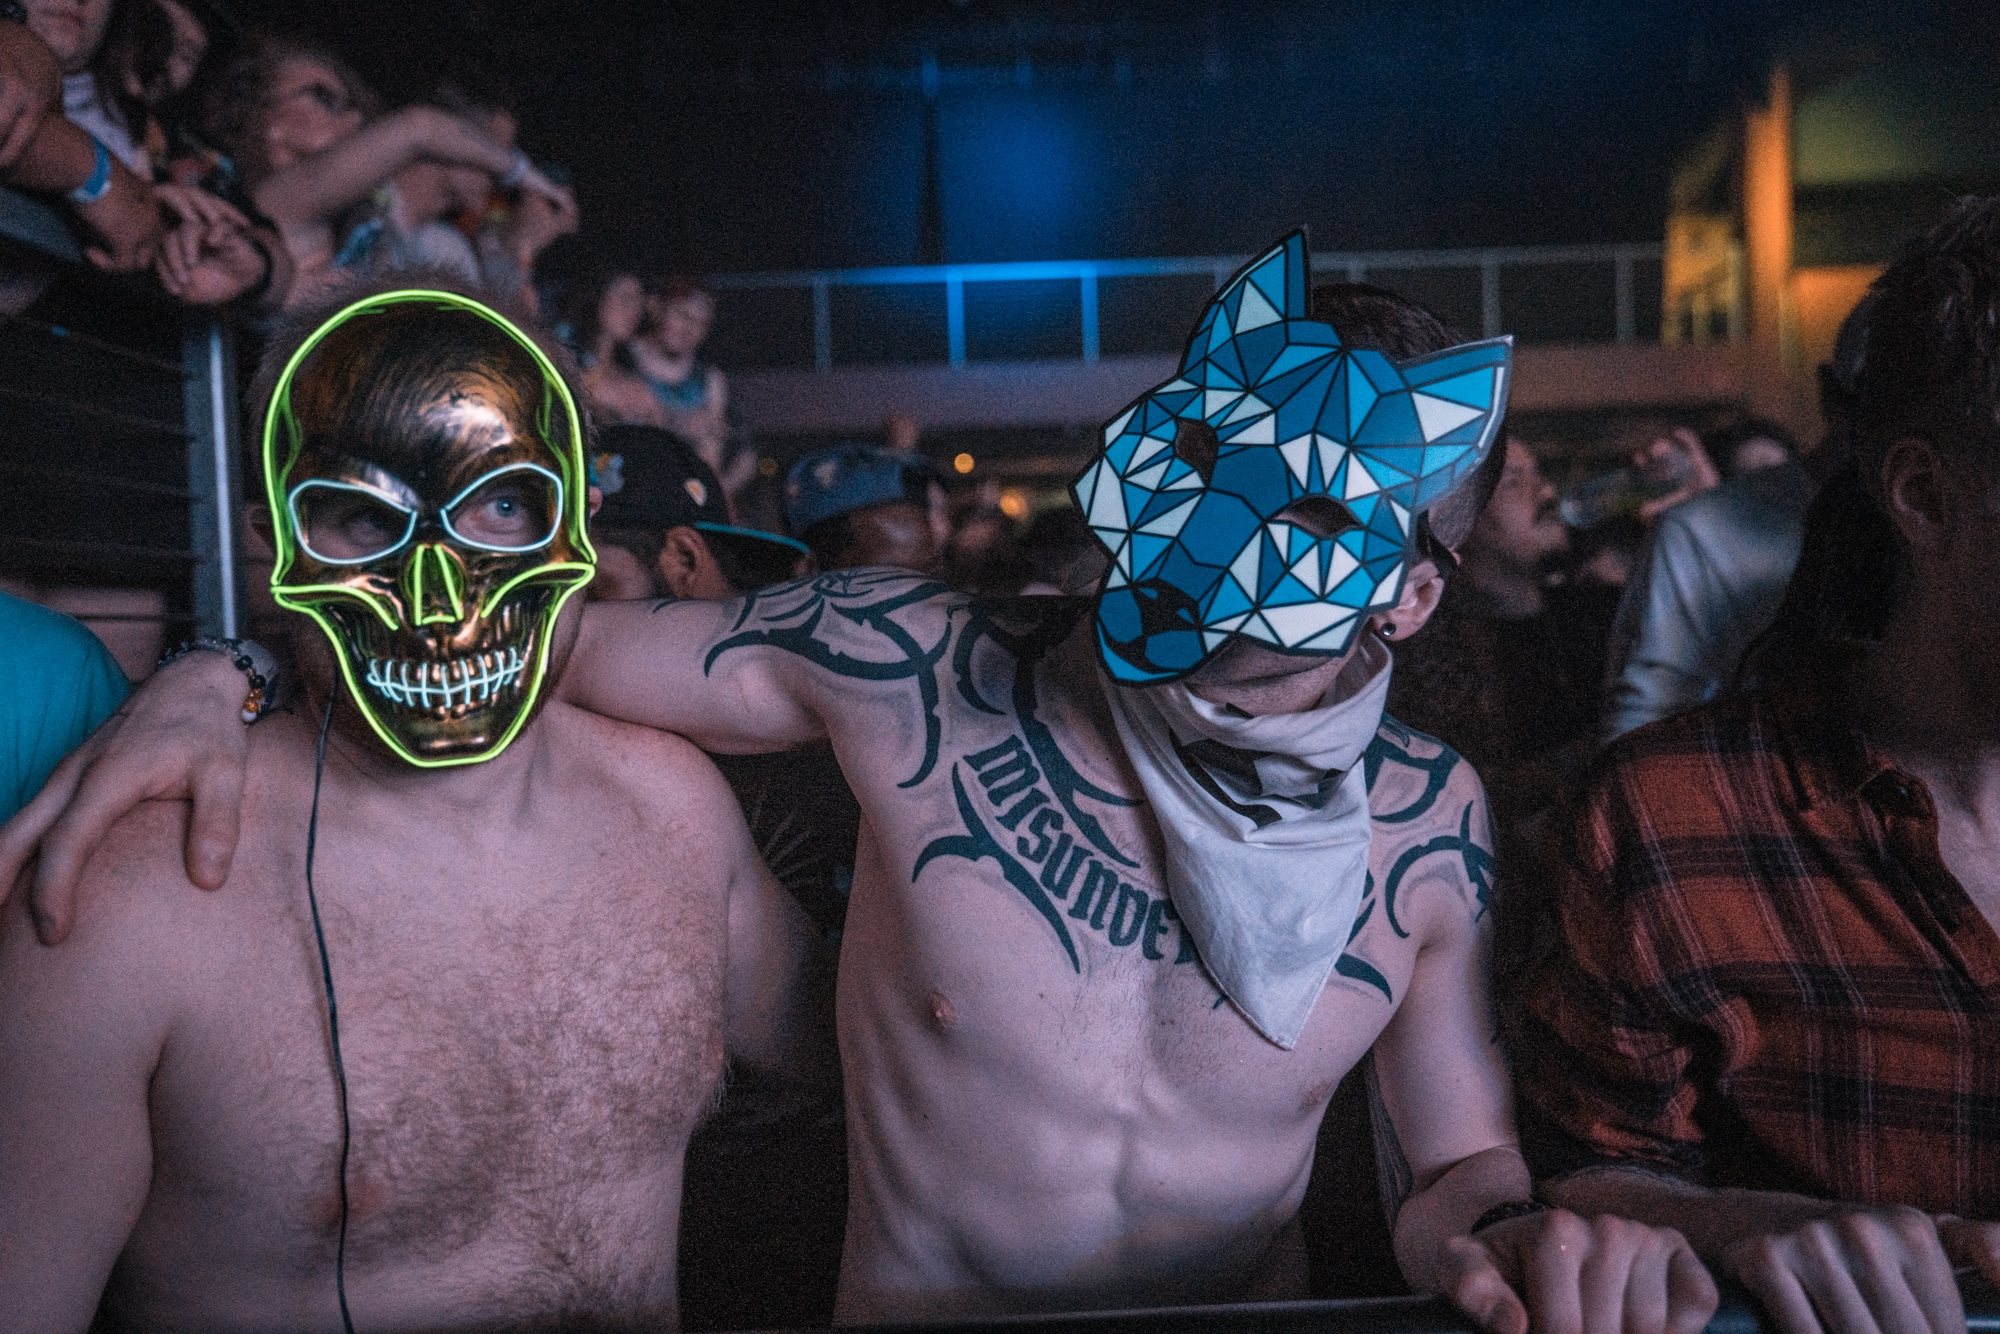 Crowd - Photo by Chris Taylor